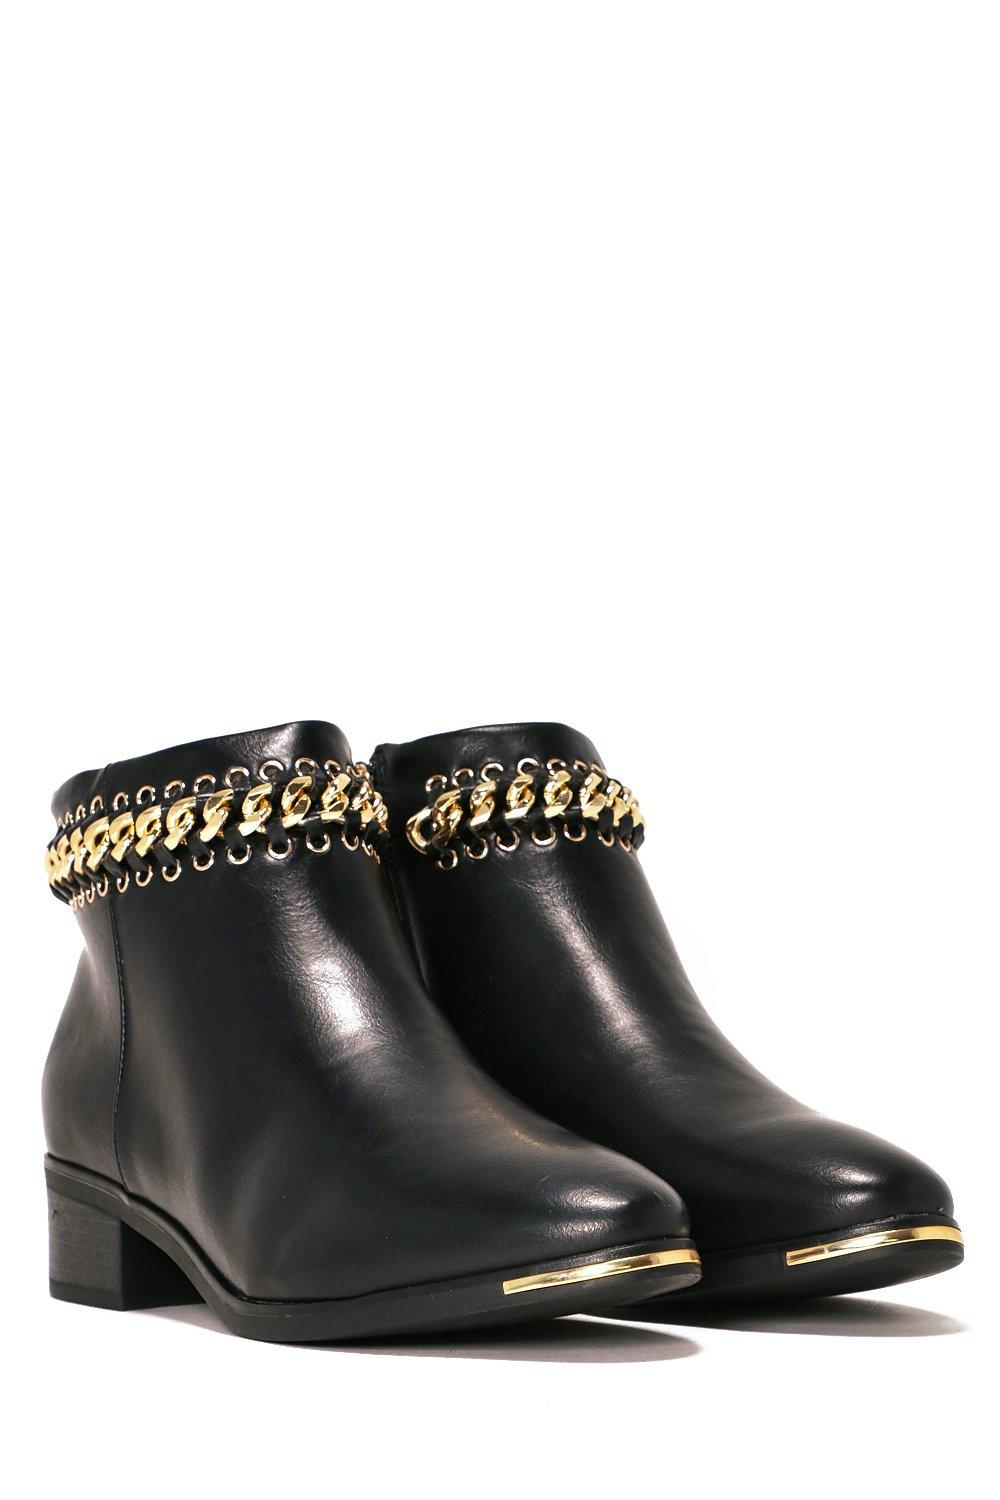 e96e36b071d Yank My Chain Ankle Boot | Shop Clothes at Nasty Gal!